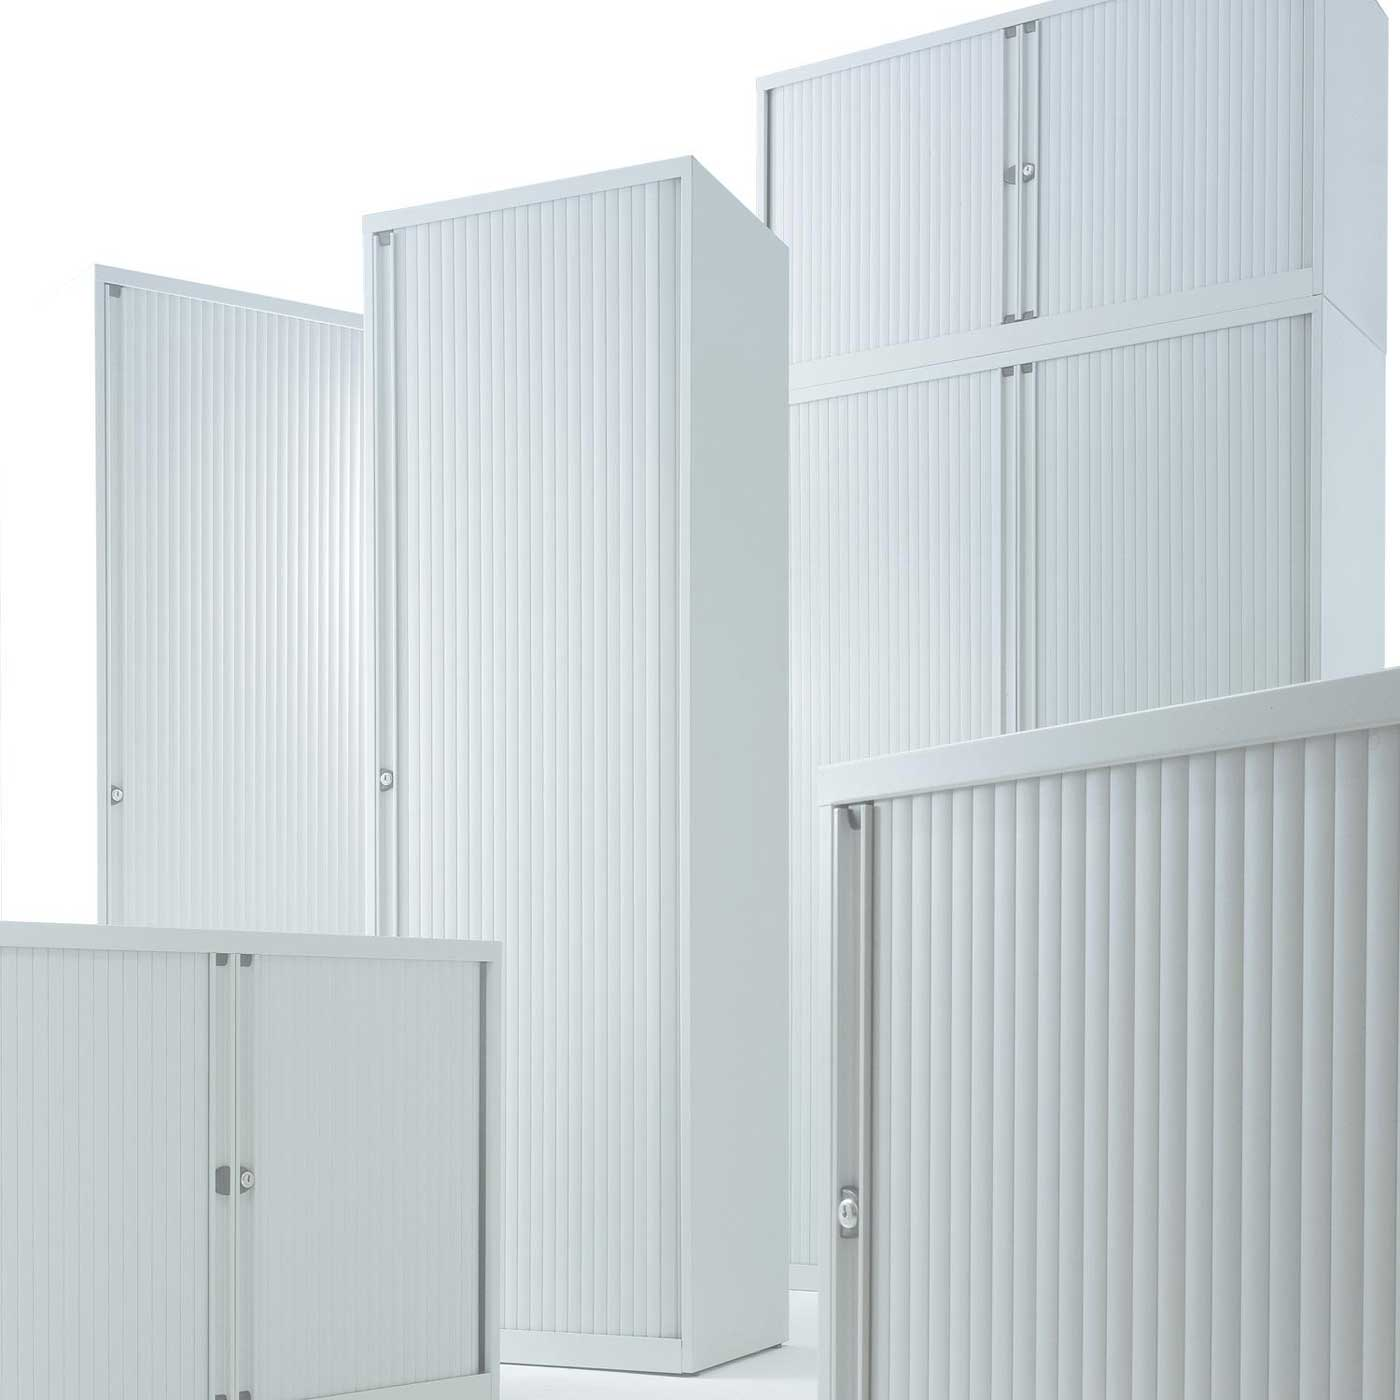 Eurotambour Storage Space Units from Bisley Cabinets